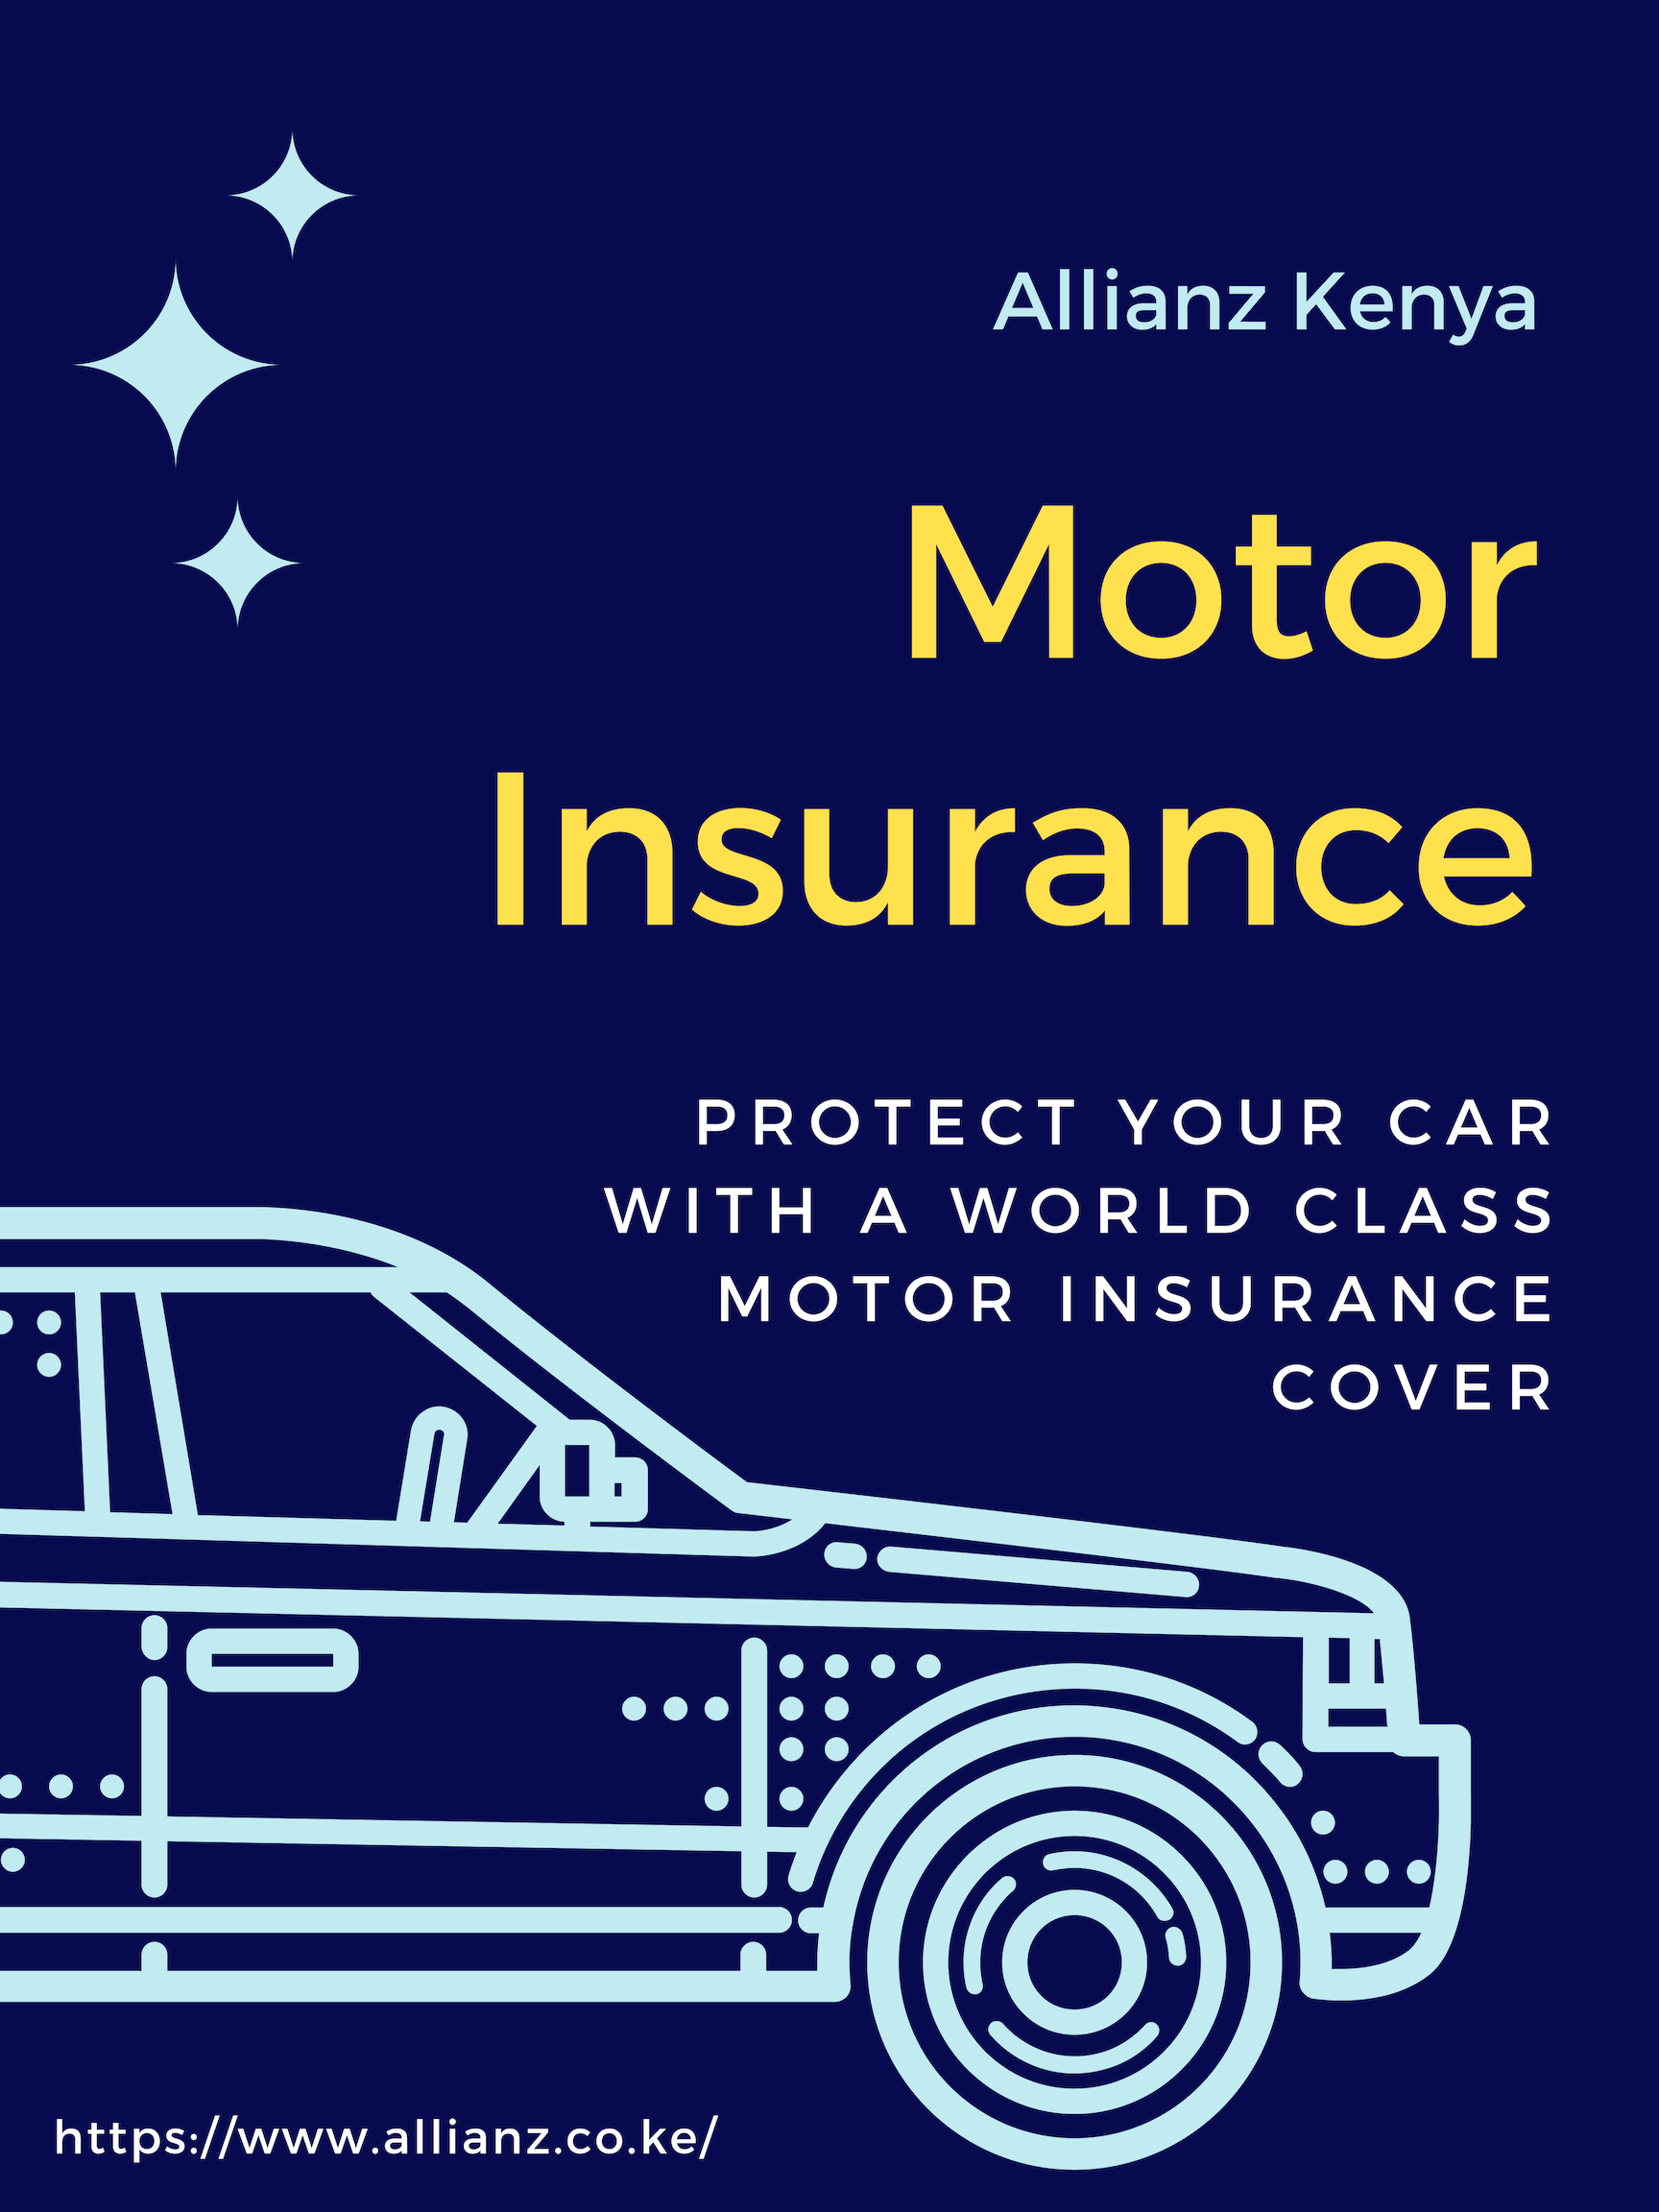 Allianz Insurance Kenya Is A Worldwide Leader In Insurance